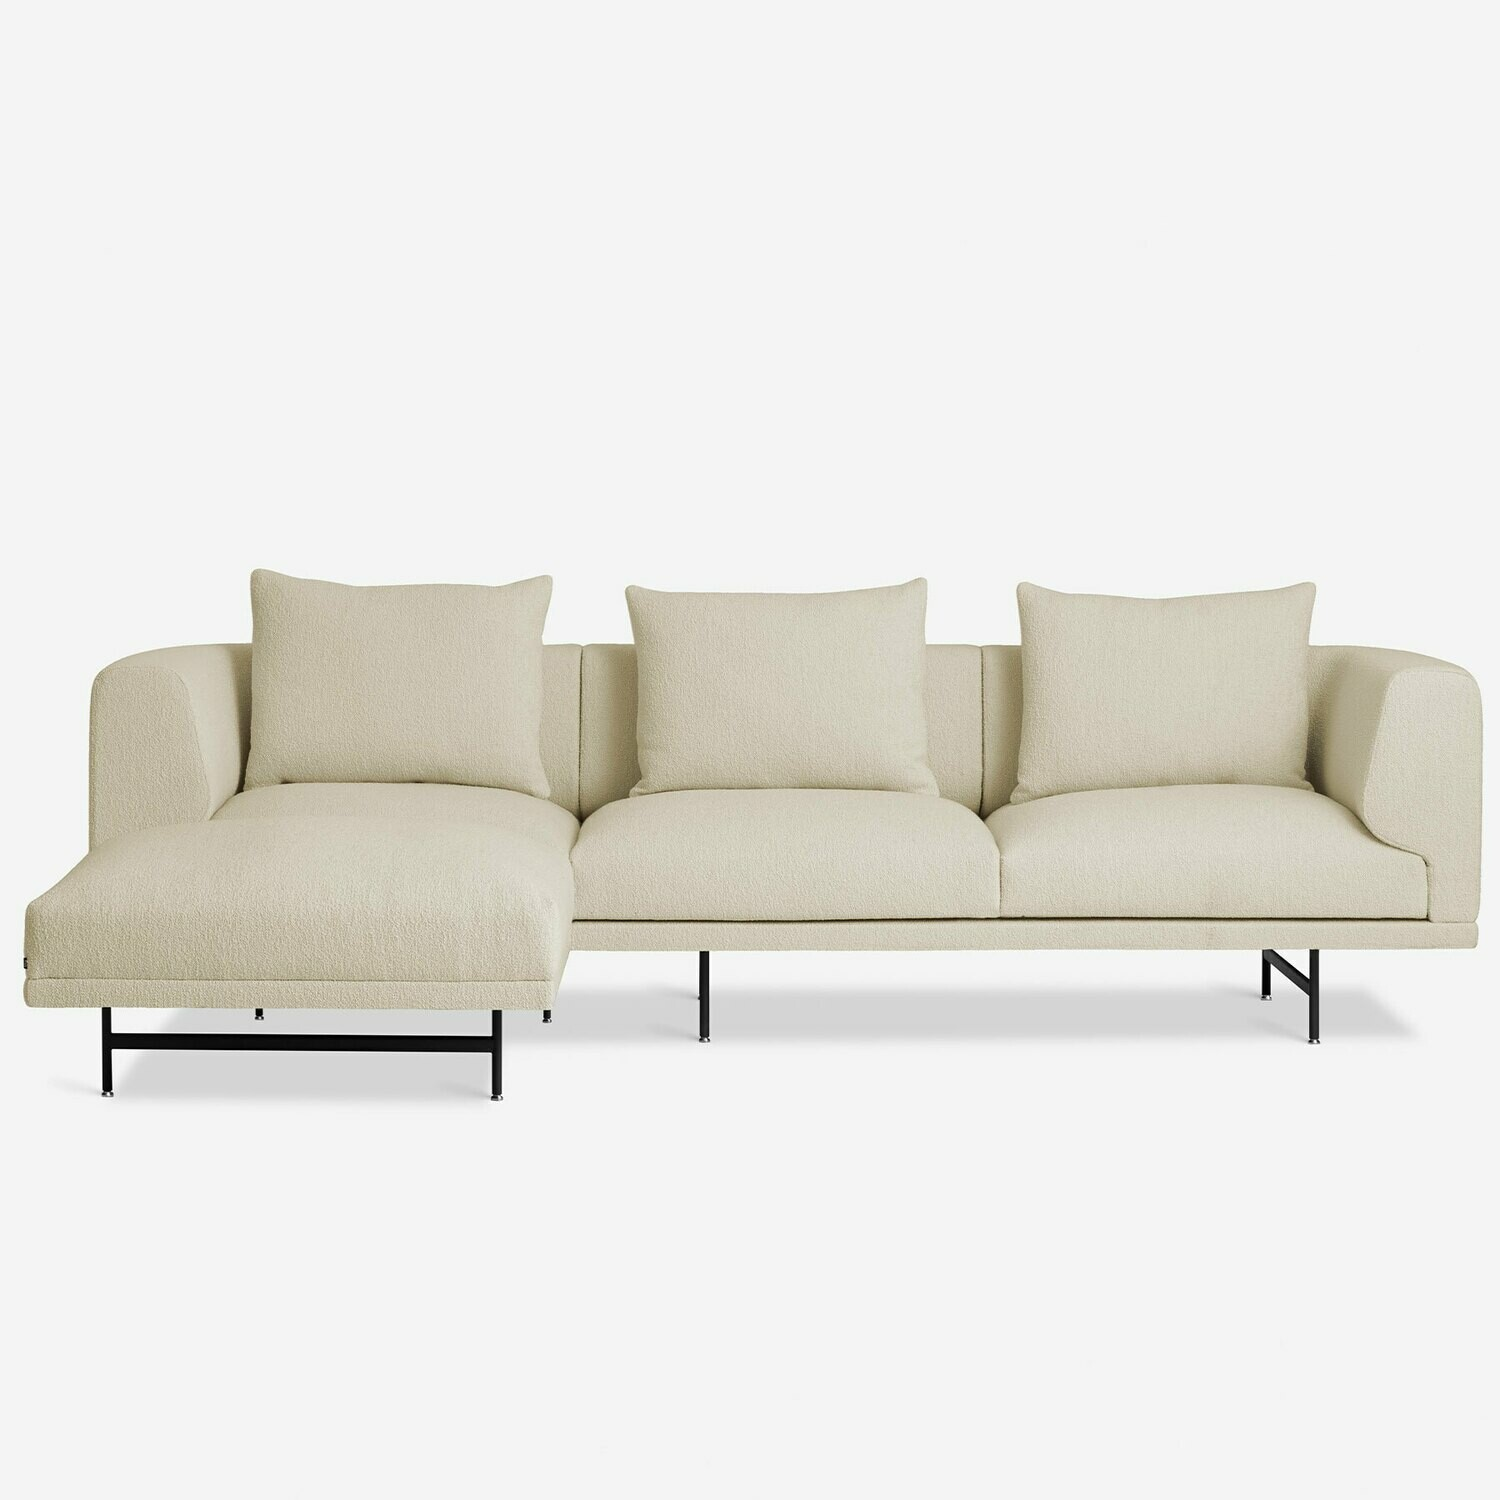 Vipp Chimney sofa, 3-seater w/ chaise lounge